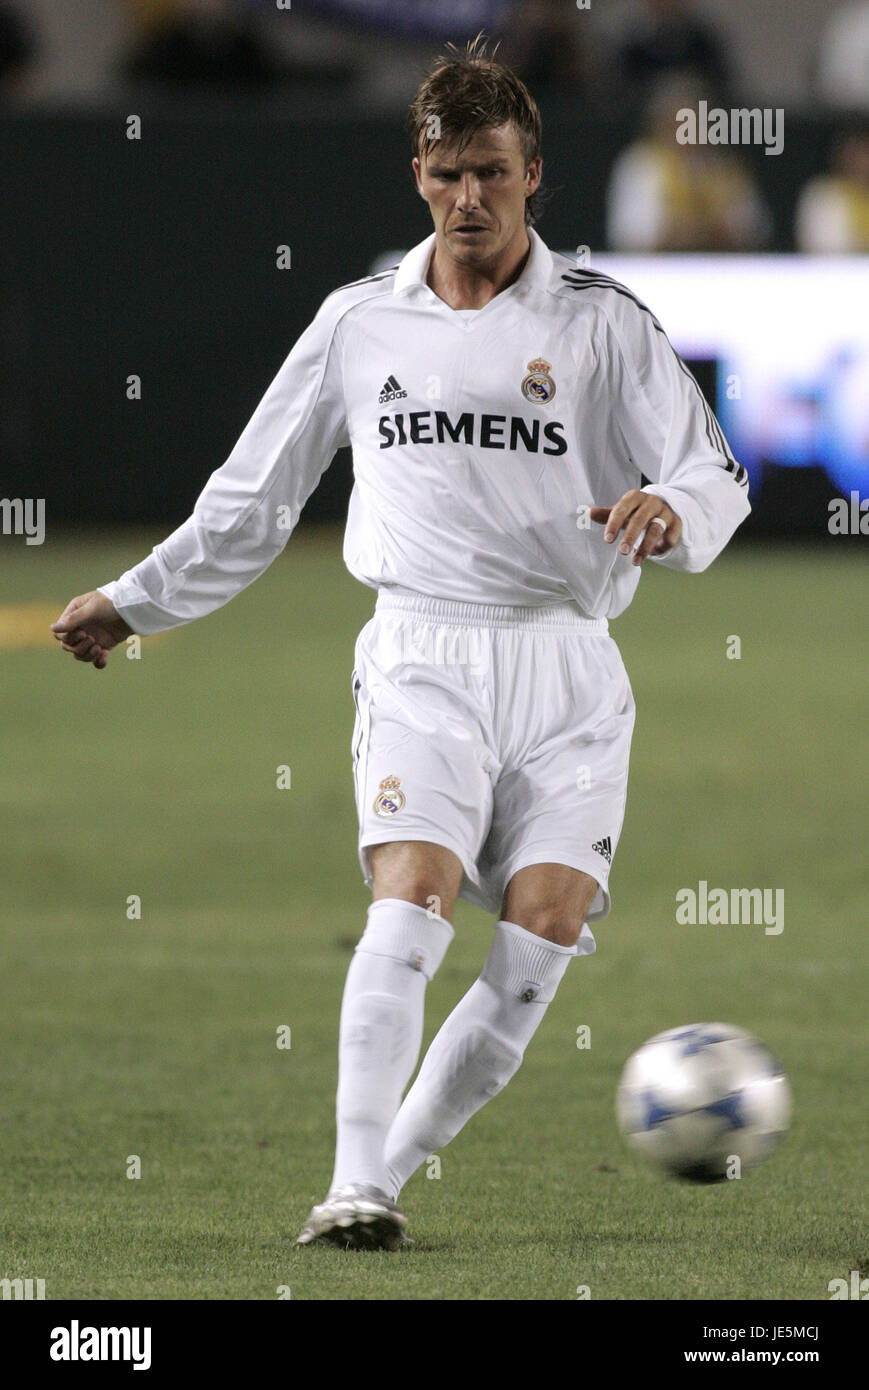 503489c2f DAVID BECKHAM REAL MADRID CF HOME DEPOT CENTER CARSON LOS ANGELES USA 19  July 2005 -